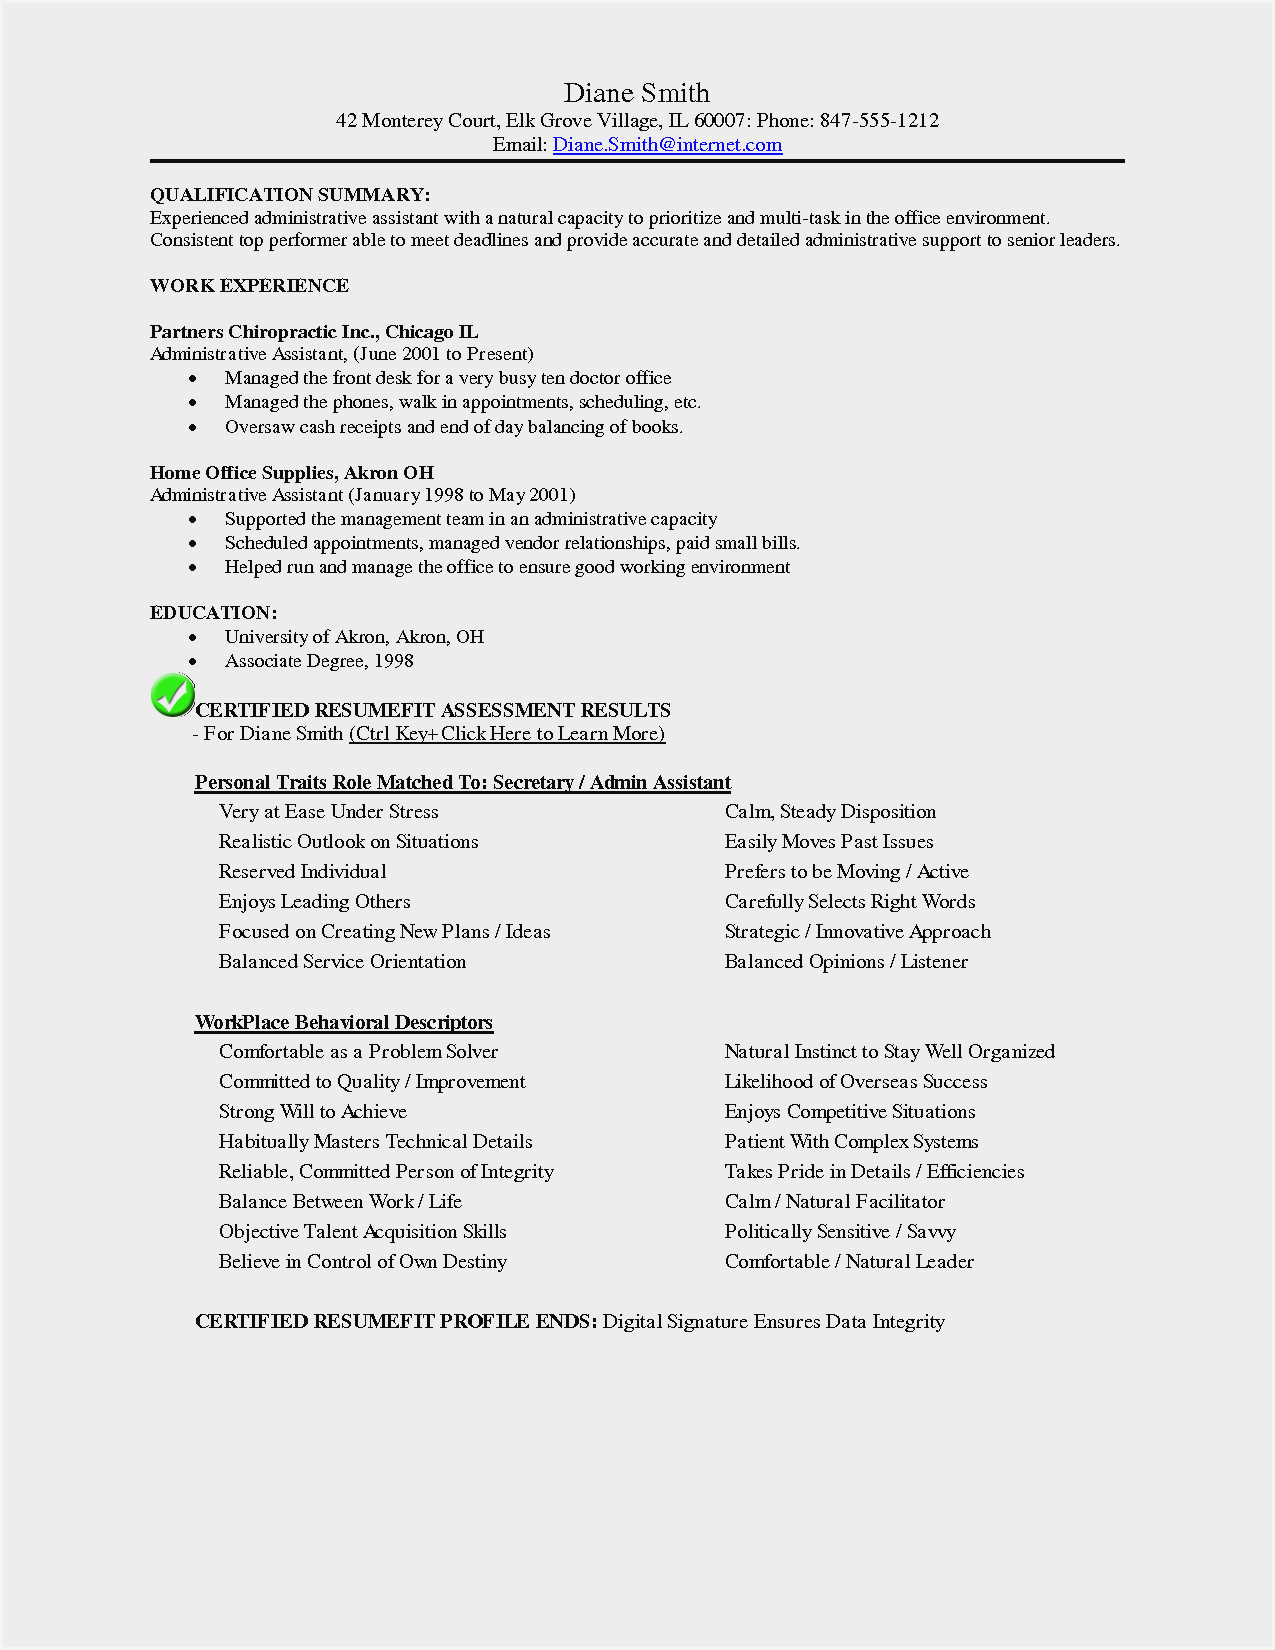 free administrative assistant resume templates sample lpn duties and responsibilities Resume Free Administrative Assistant Resume Templates